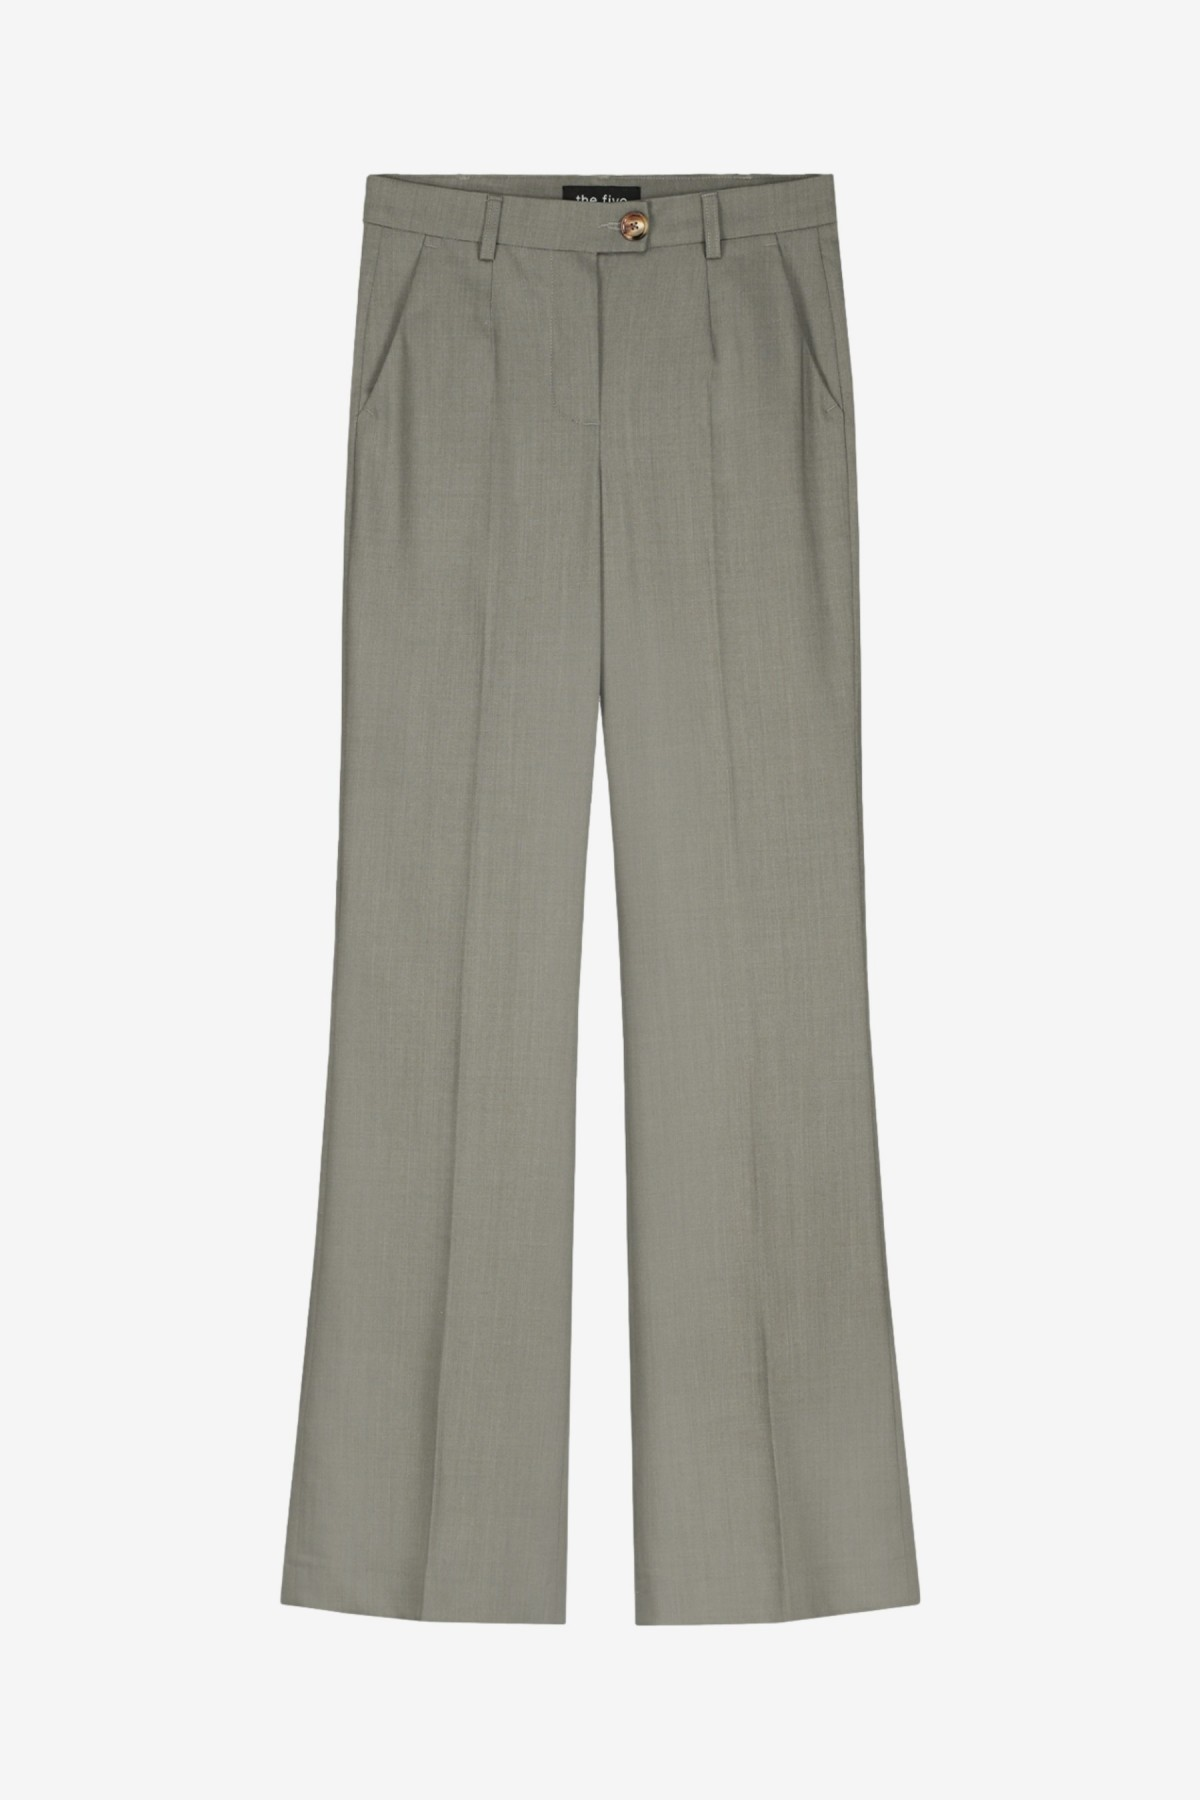 The Five Studio The Trousers in Ash